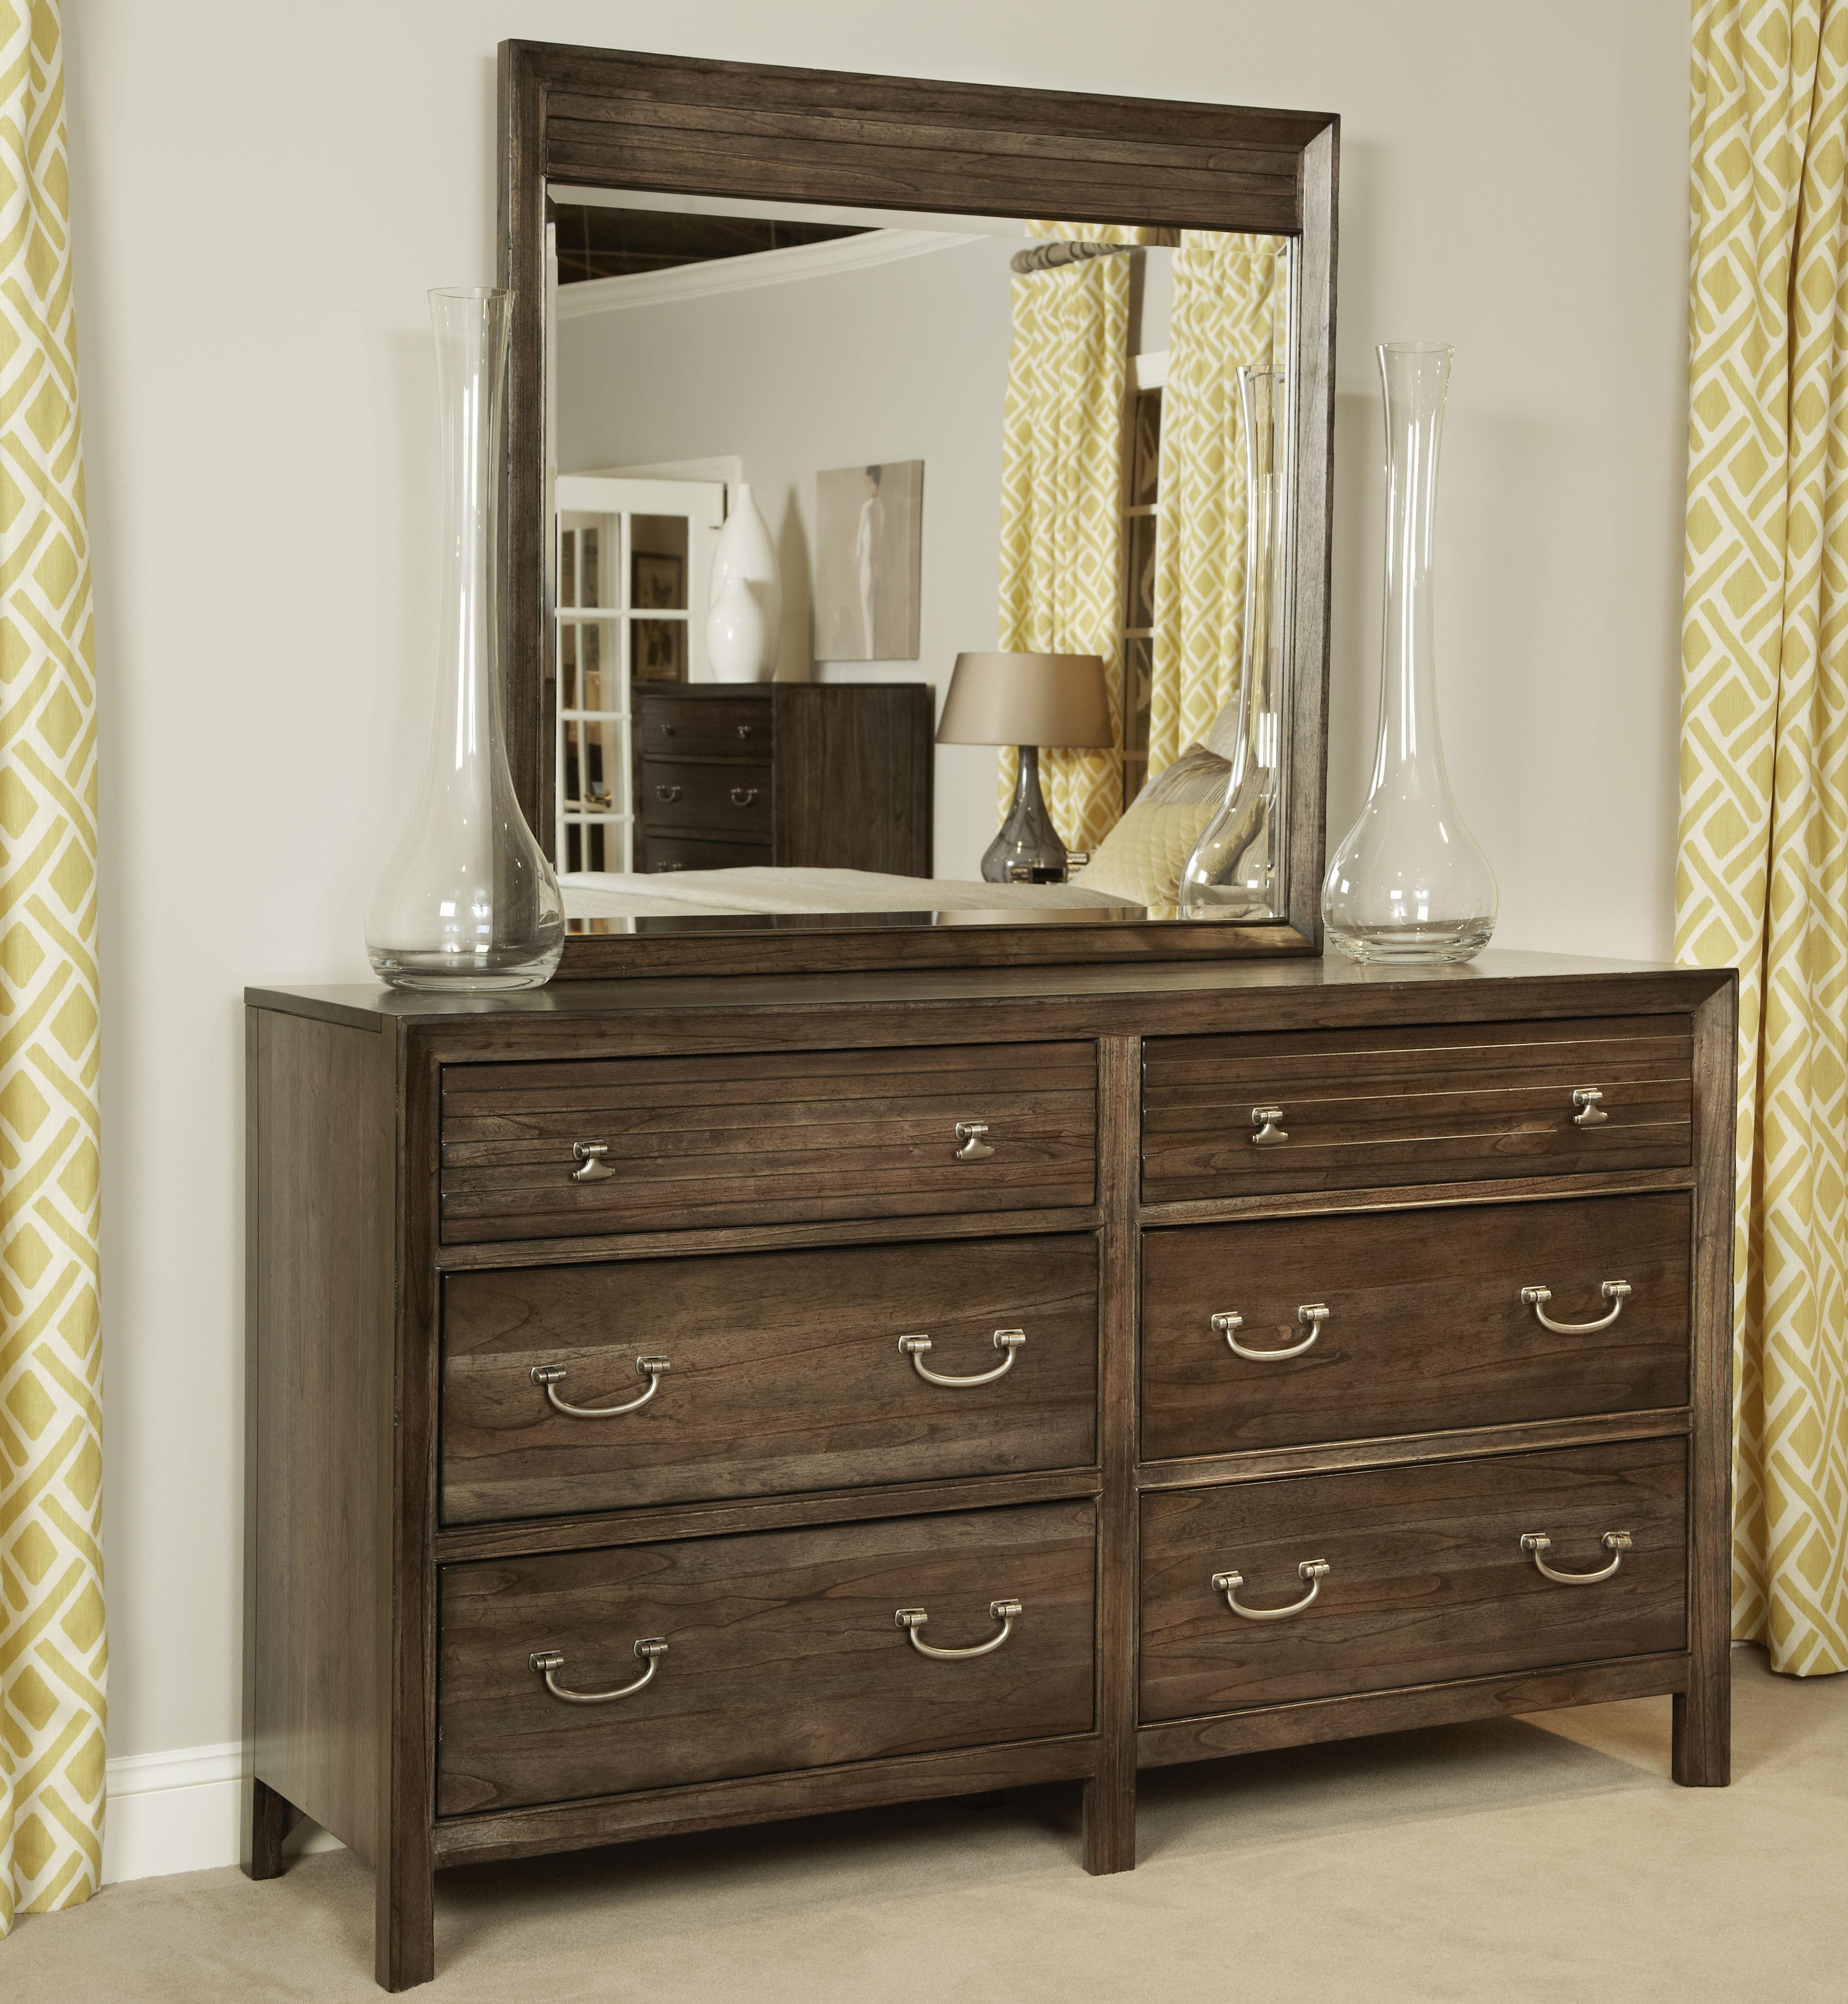 Kincaid Furniture Montreat Contemporary Saxony Dresser And